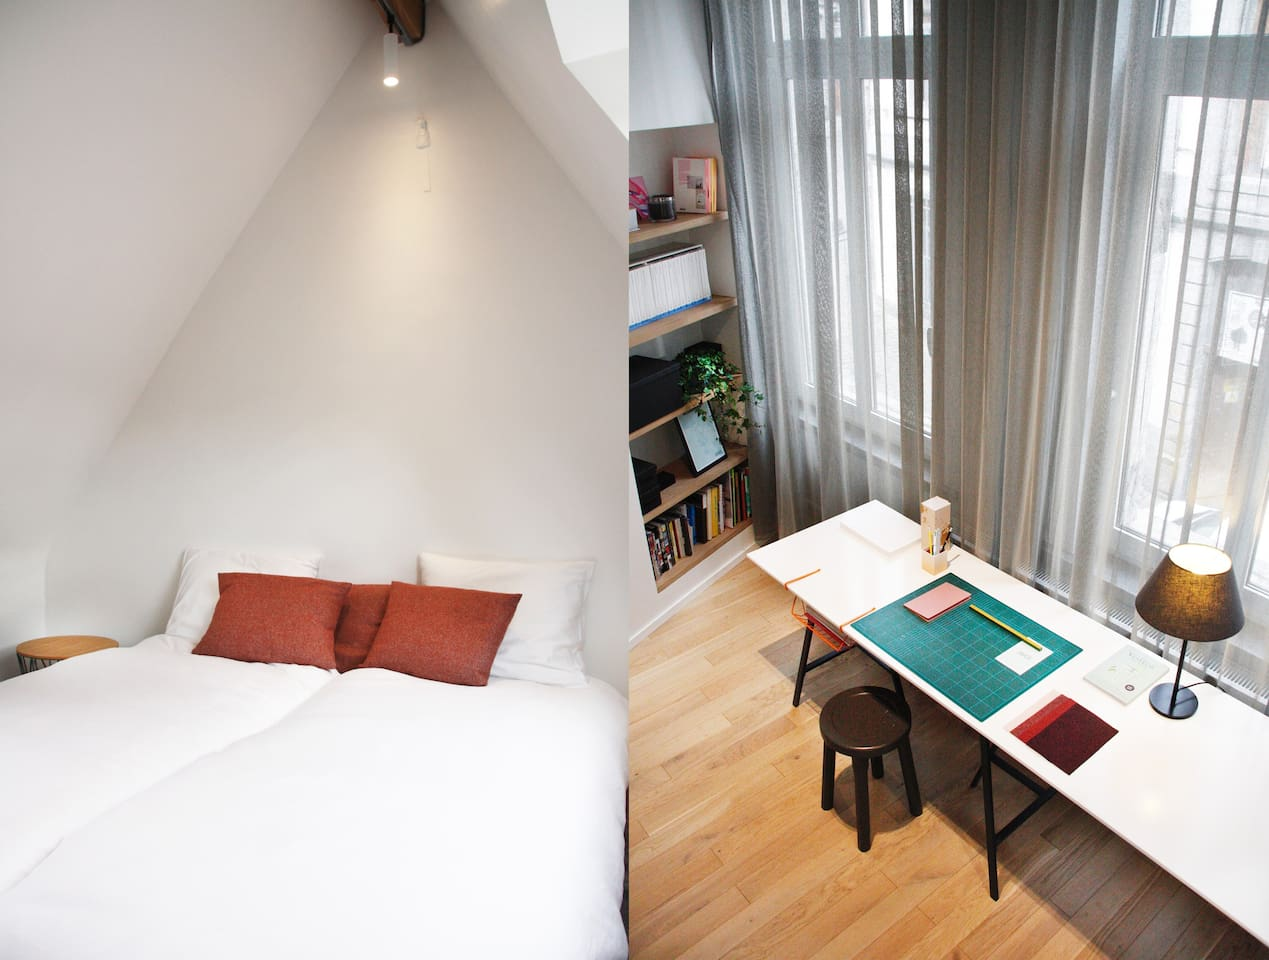 Mezzanine bedroom, double bed which can be split for 2 single beds + Shared office space